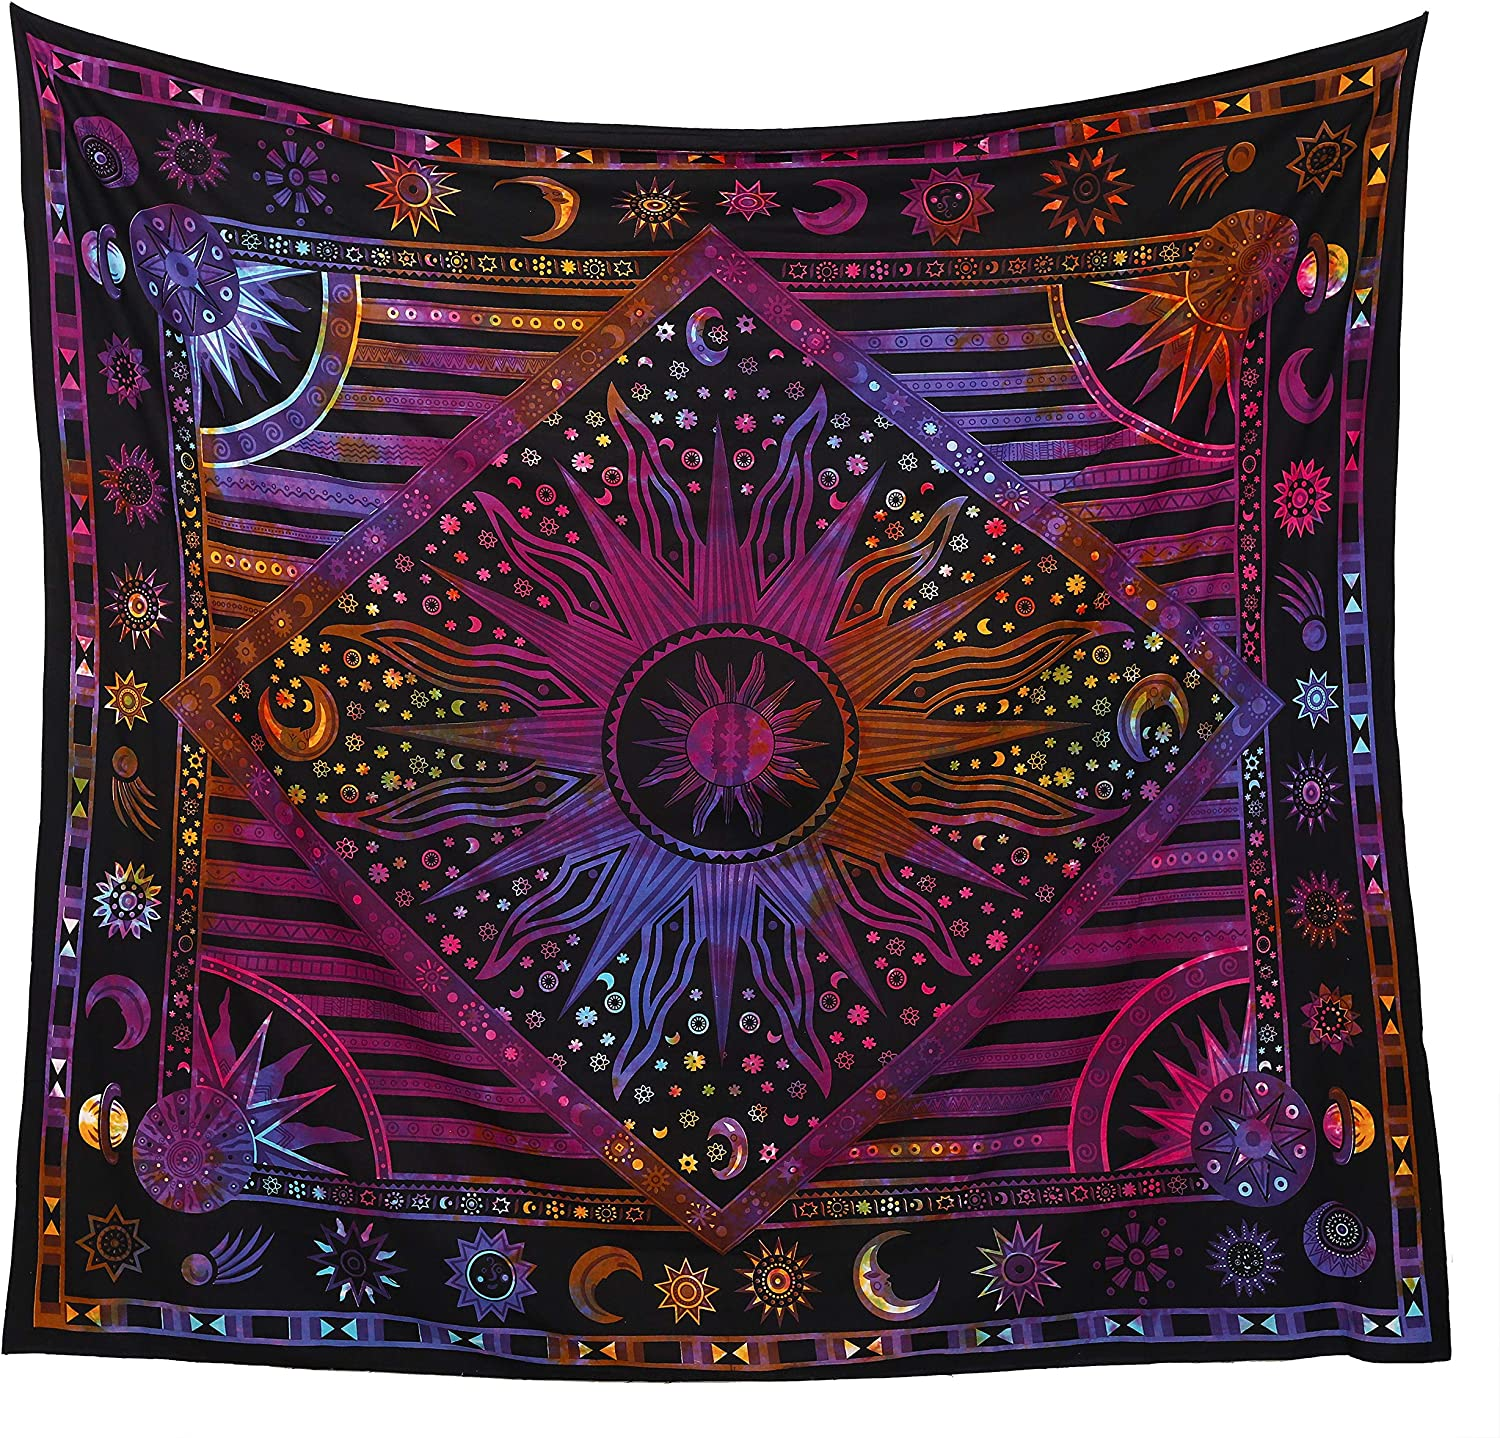 Popular Handicrafts Kp1113 Psychedelic Celestial Sun Moon Planet Bohemian Tapestry Wall Hanging Dorm Decor Boho Tapestries Hippie Hippy Purple tie dye Tapestry Beach Coverlet